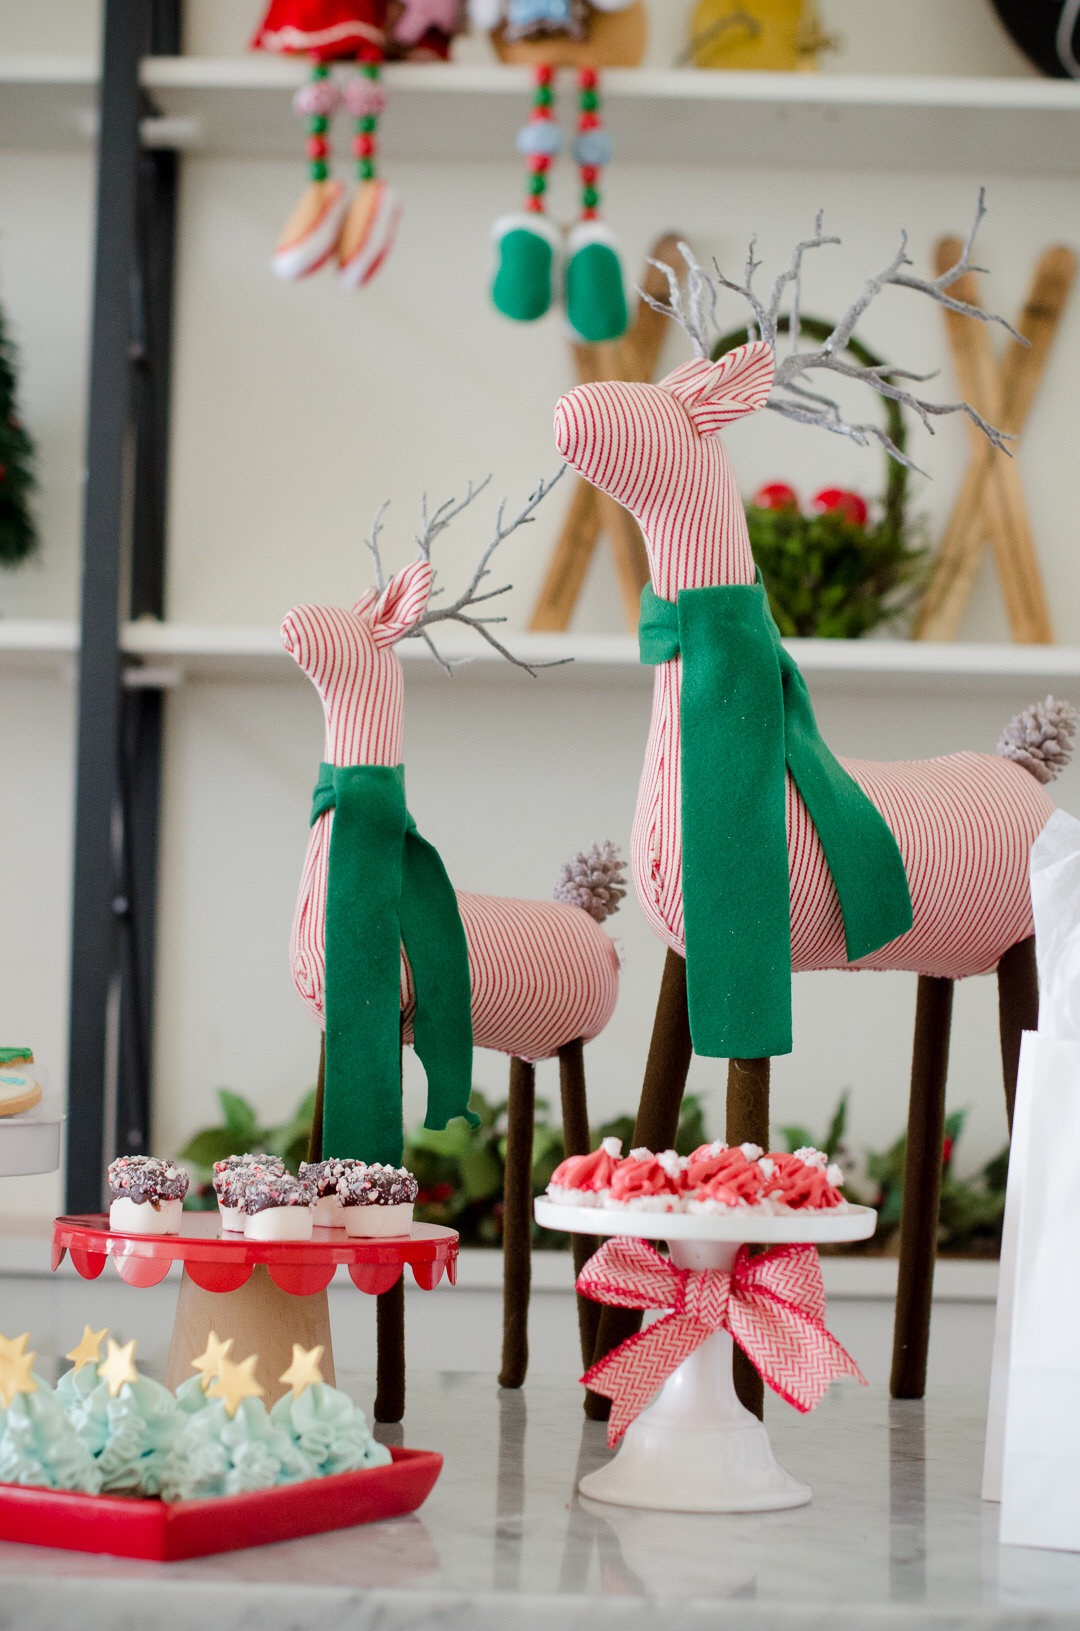 These red and white striped reindeer with the green scarves add the perfect vintage touches at this beautiful modern and vintage Christmas party. See more holiday party inspiration from Austin based party stylist Mint Event Design at www.minteventdesign.com #desserttable #christmasdesserts #holidayparty #holidays #partyideas #christmasparty #holidaypartyideas #reindeer